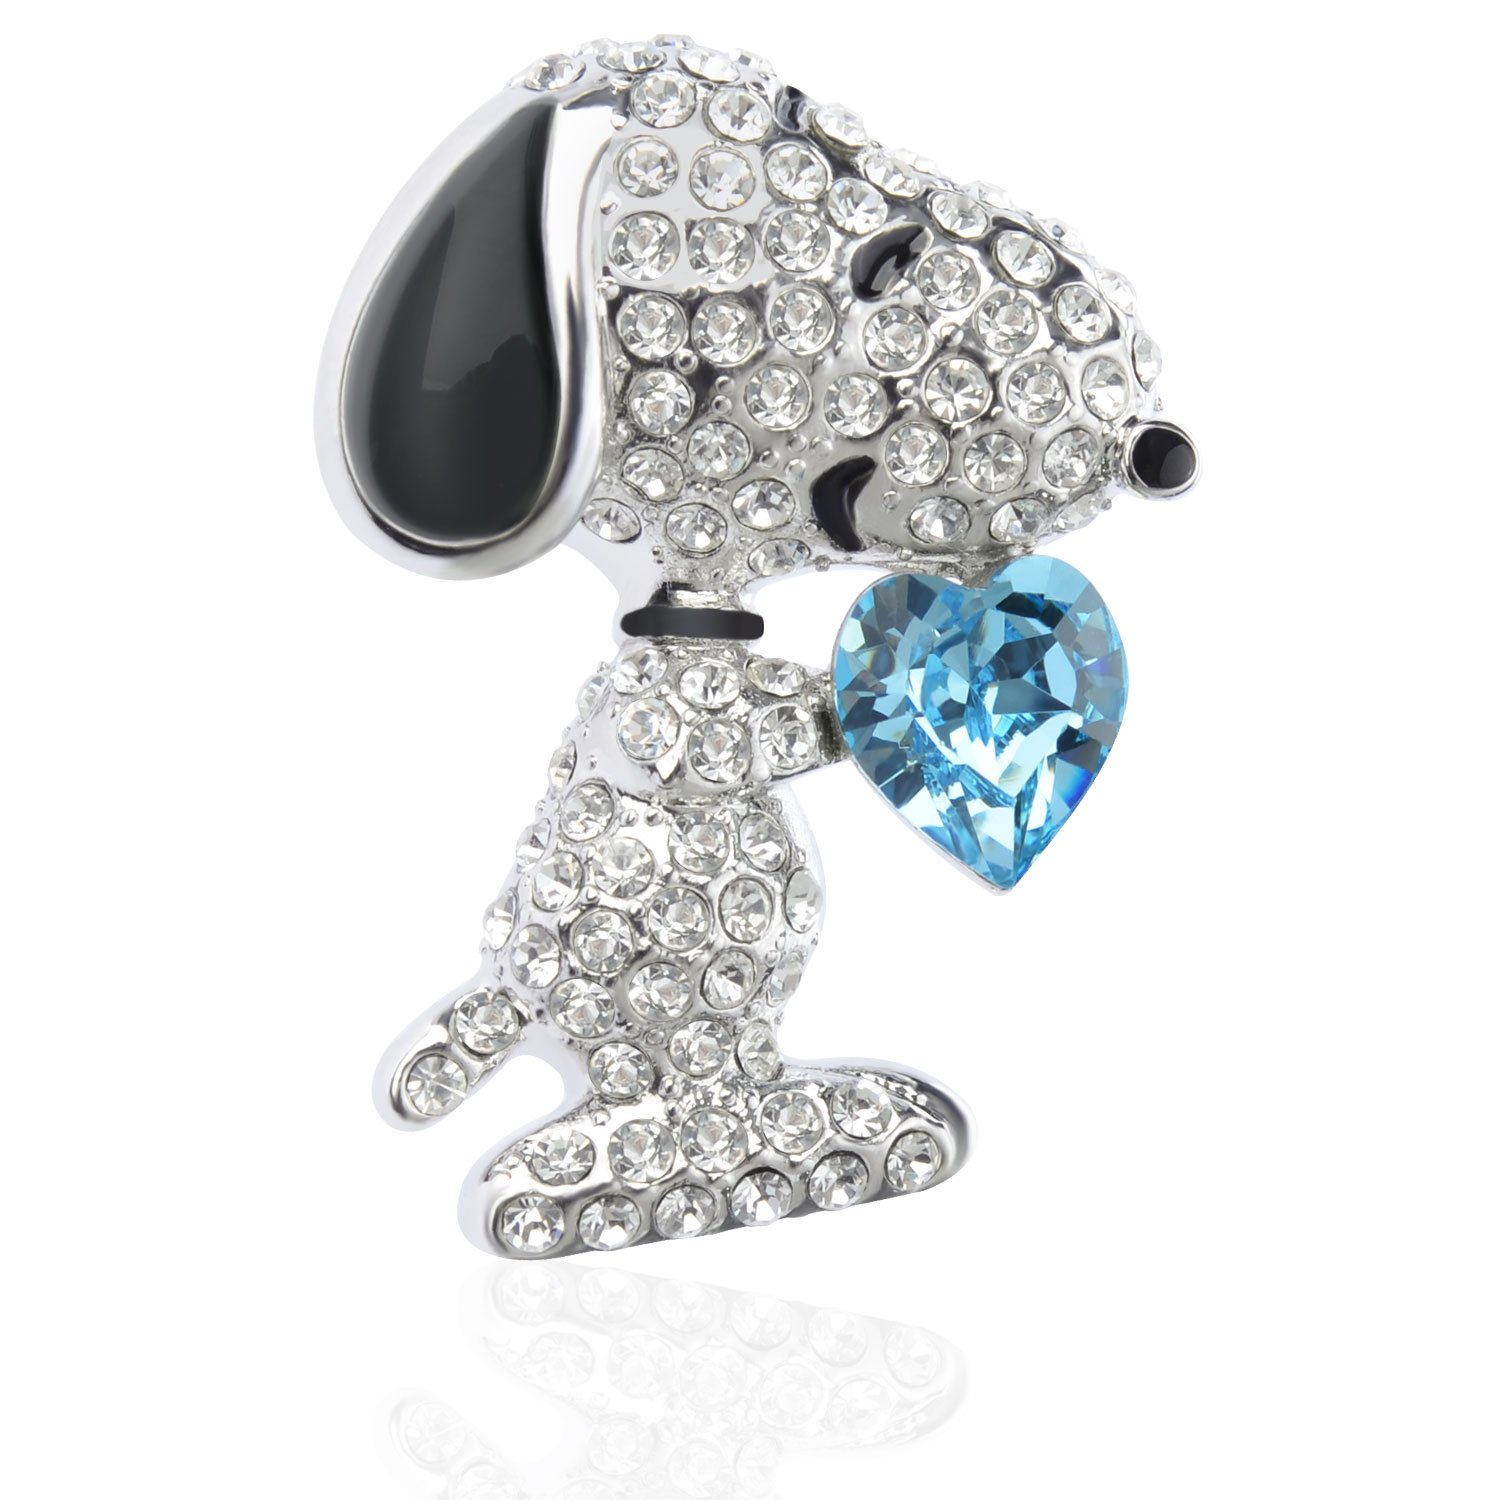 TAGOO Noble Peacock Bird Swan Vintage Monkey Seahorse Dolphin Snoopy Animal Brooches Pins Corsages Scarf Clips in Crystal Unisex Women&Men (Snoopy Design Blue Heart 1.26''H)